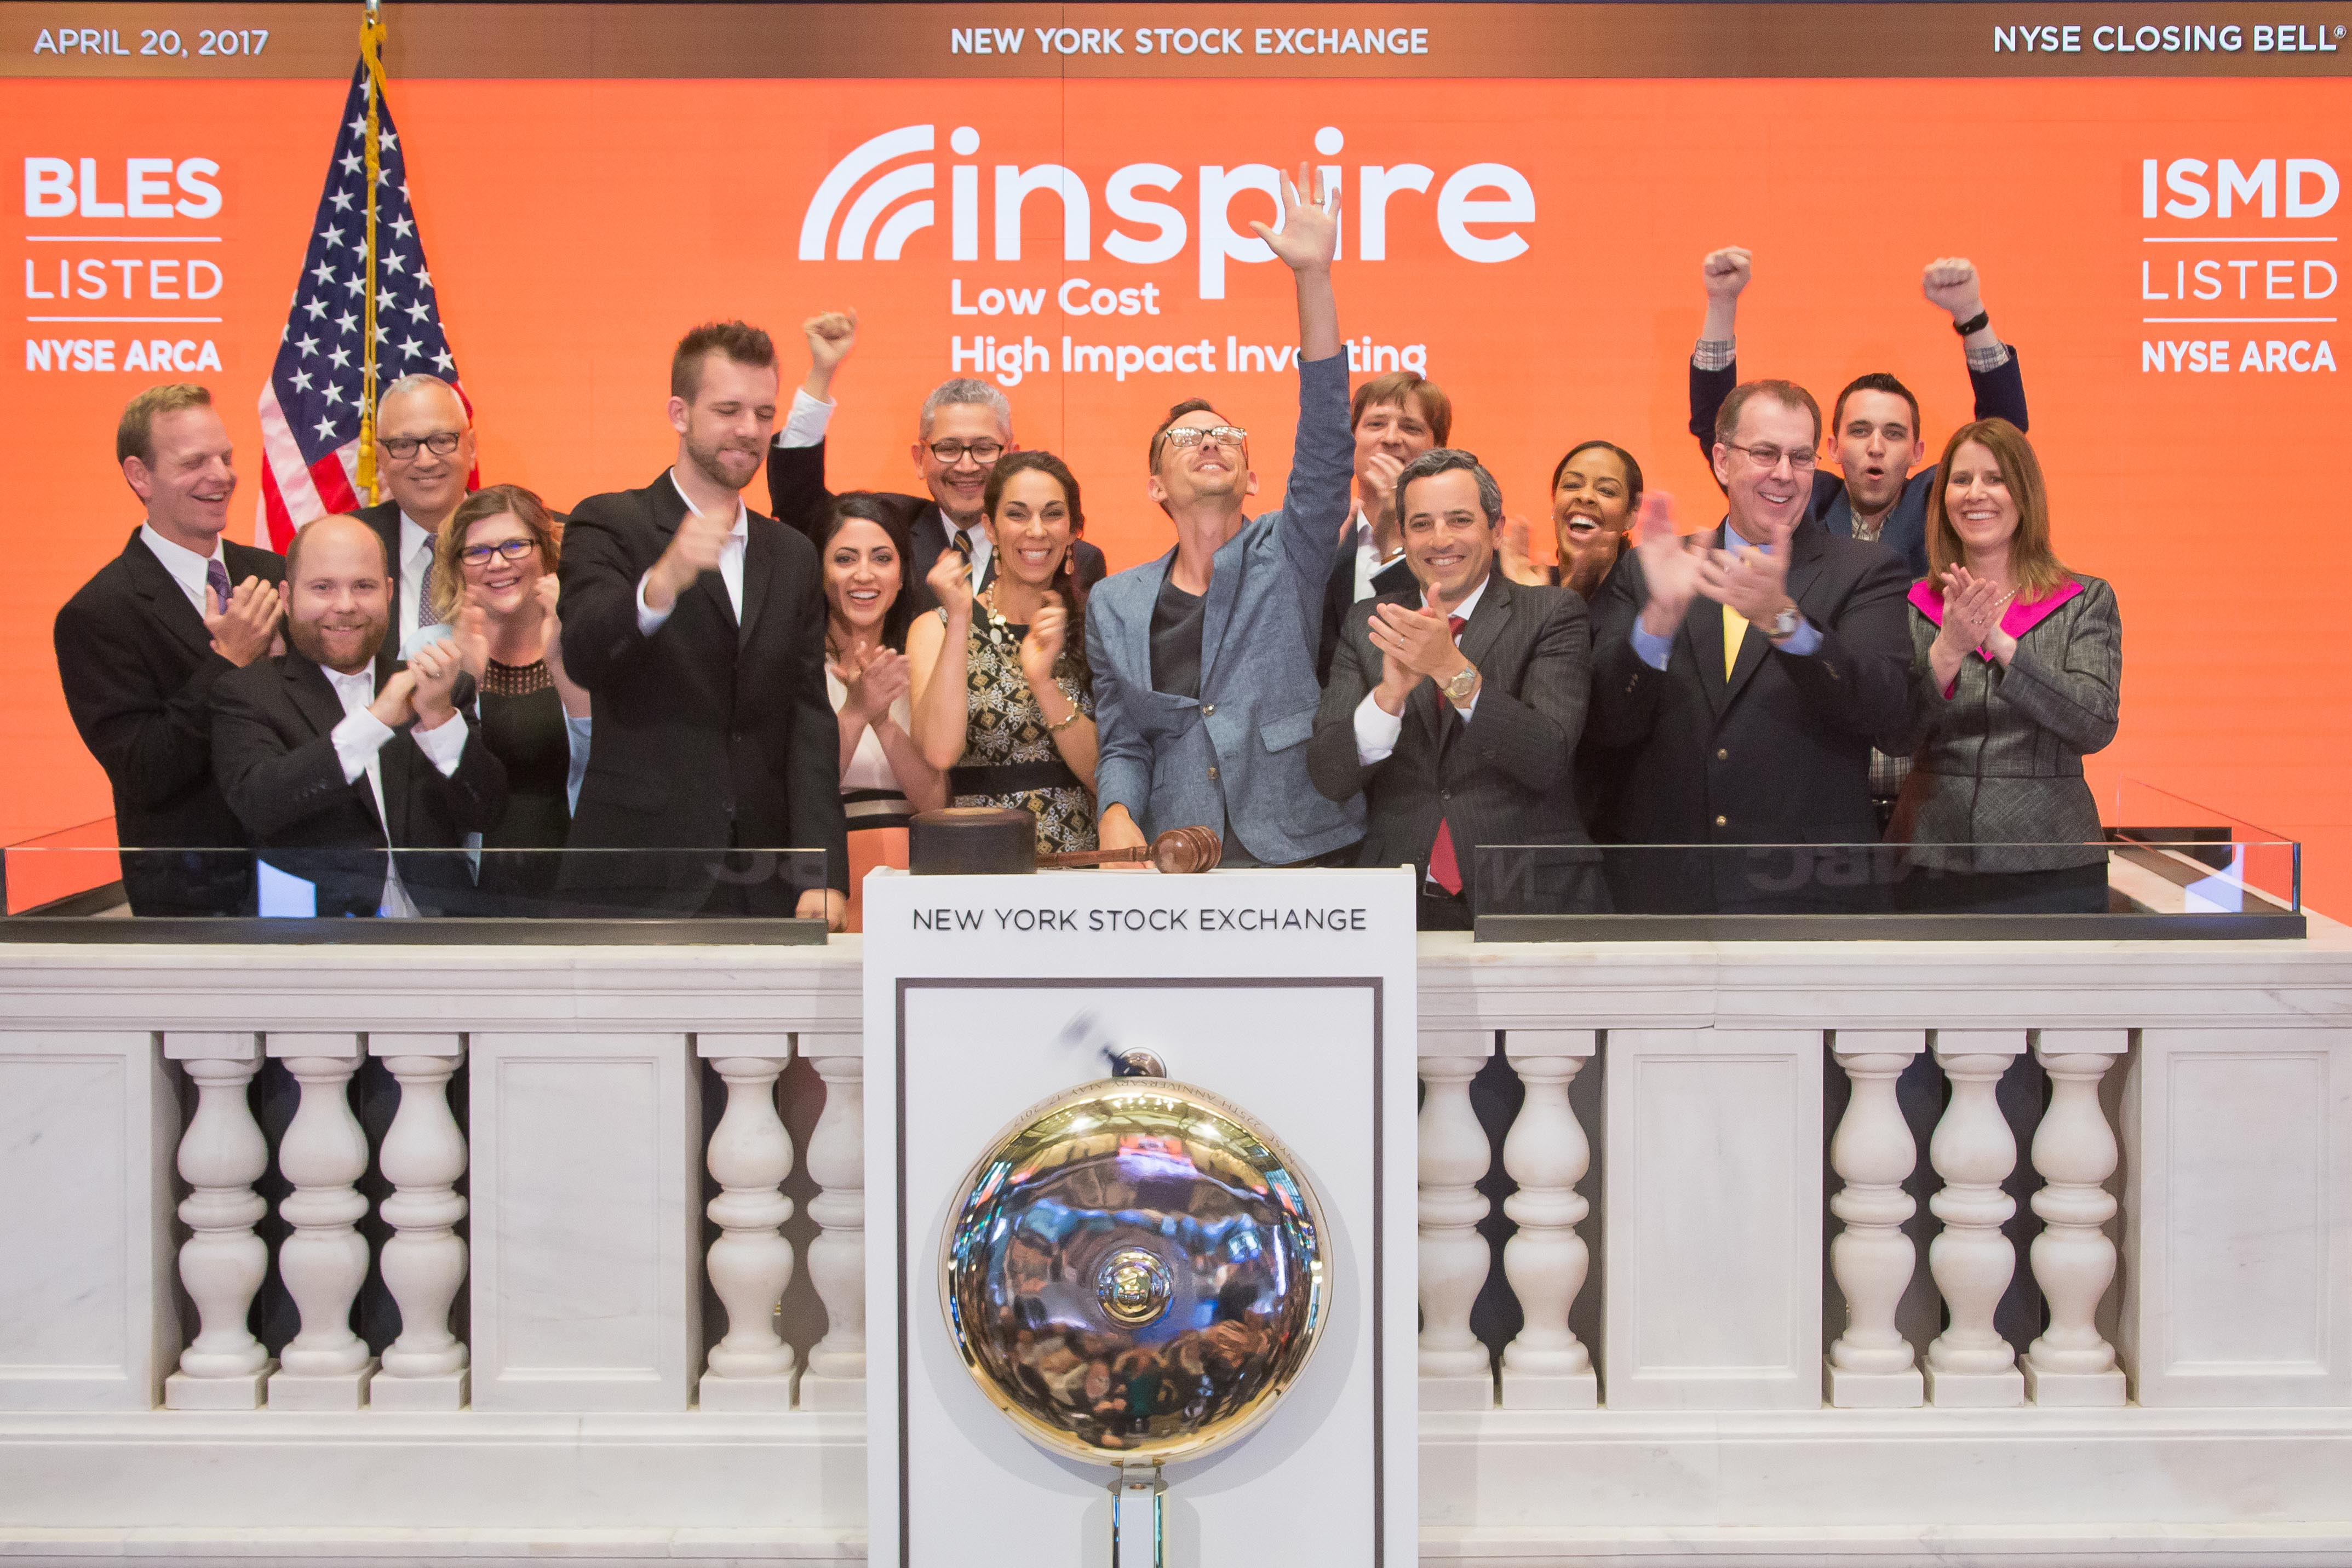 Reflections On Ringing The NYSE Closing Bell